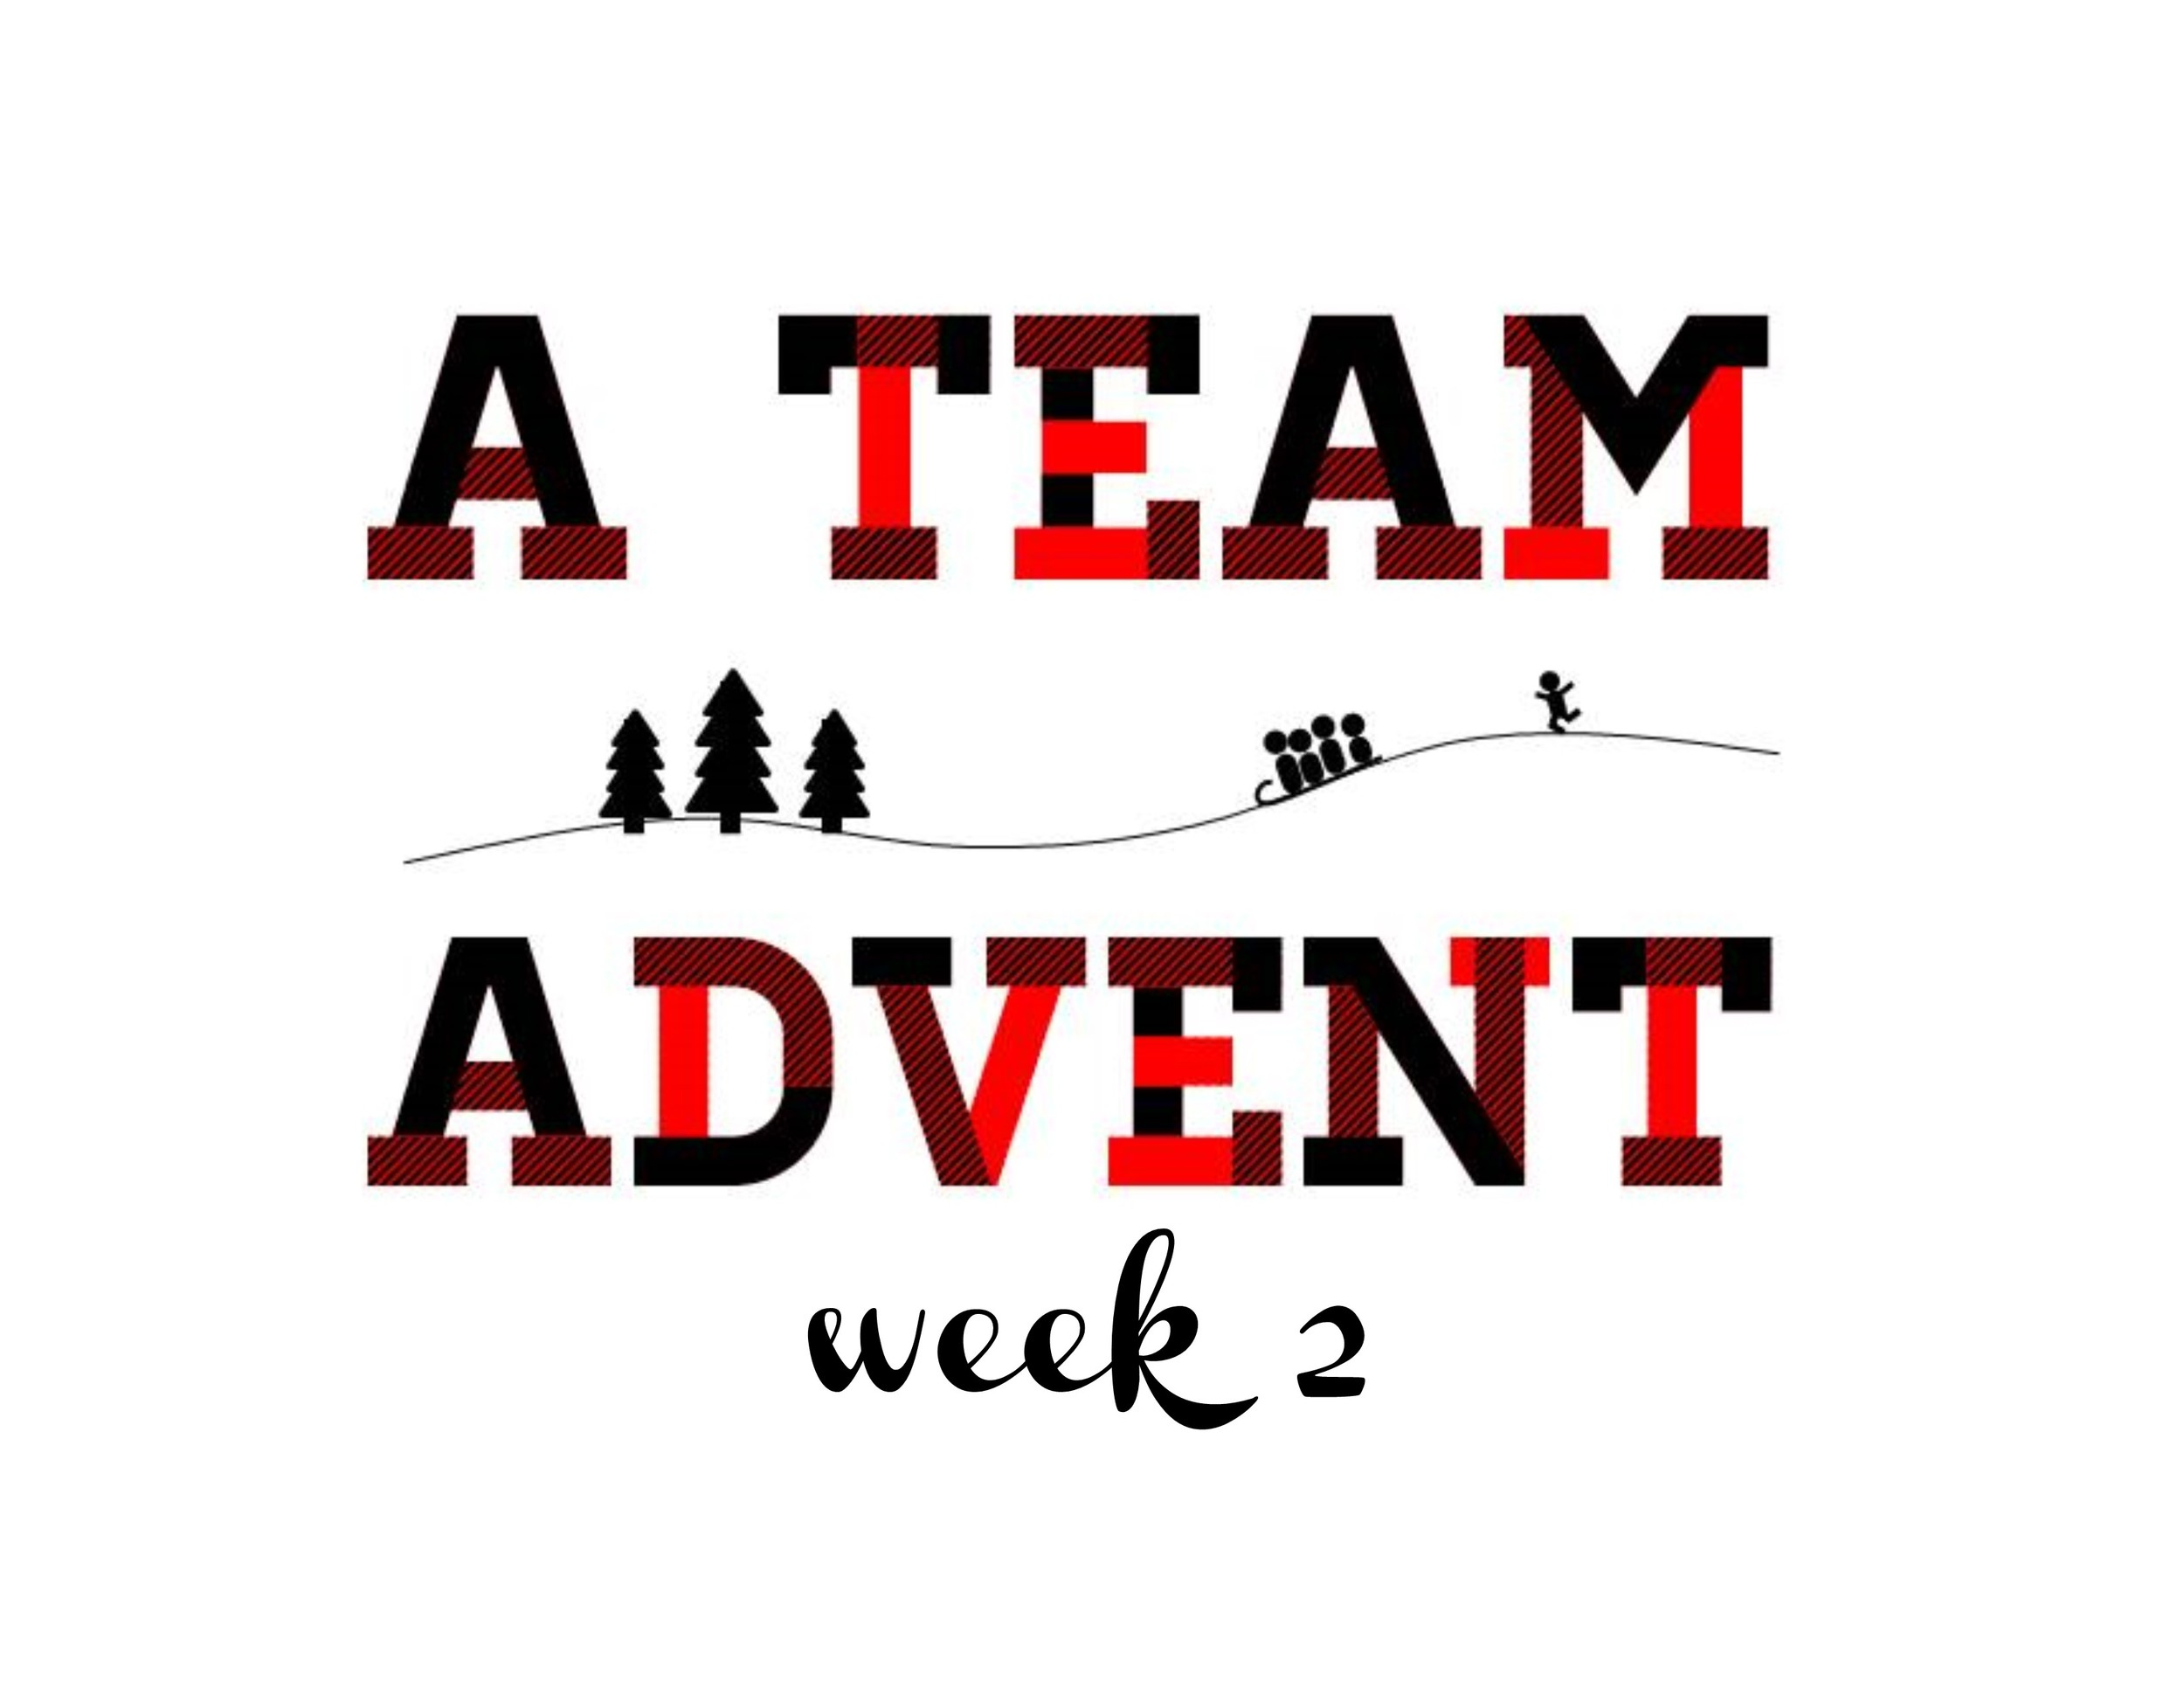 ateam_week2